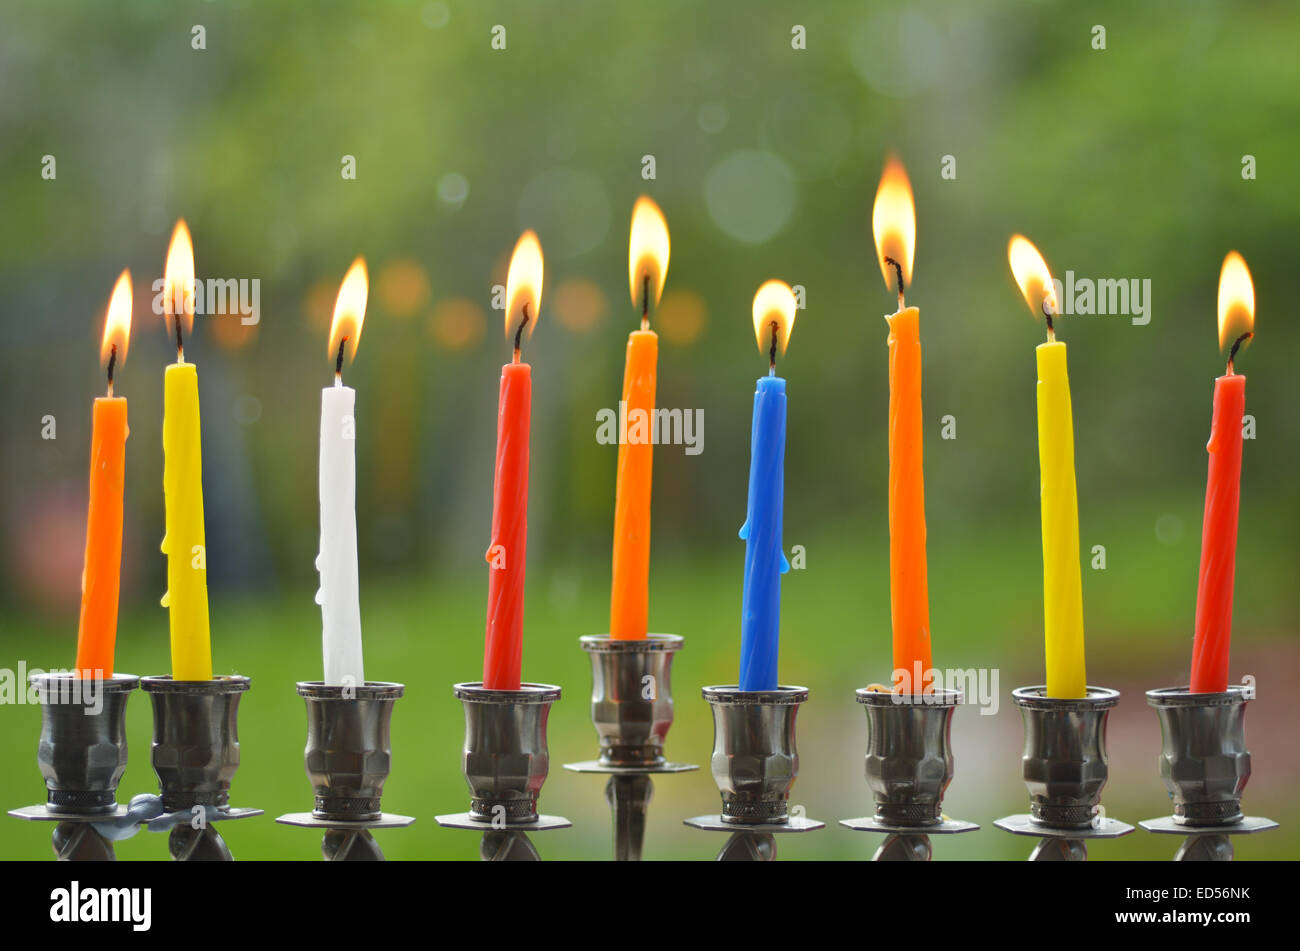 Hanukkah menorah lit with eight candles at the last day of Hanukah. - Stock Image